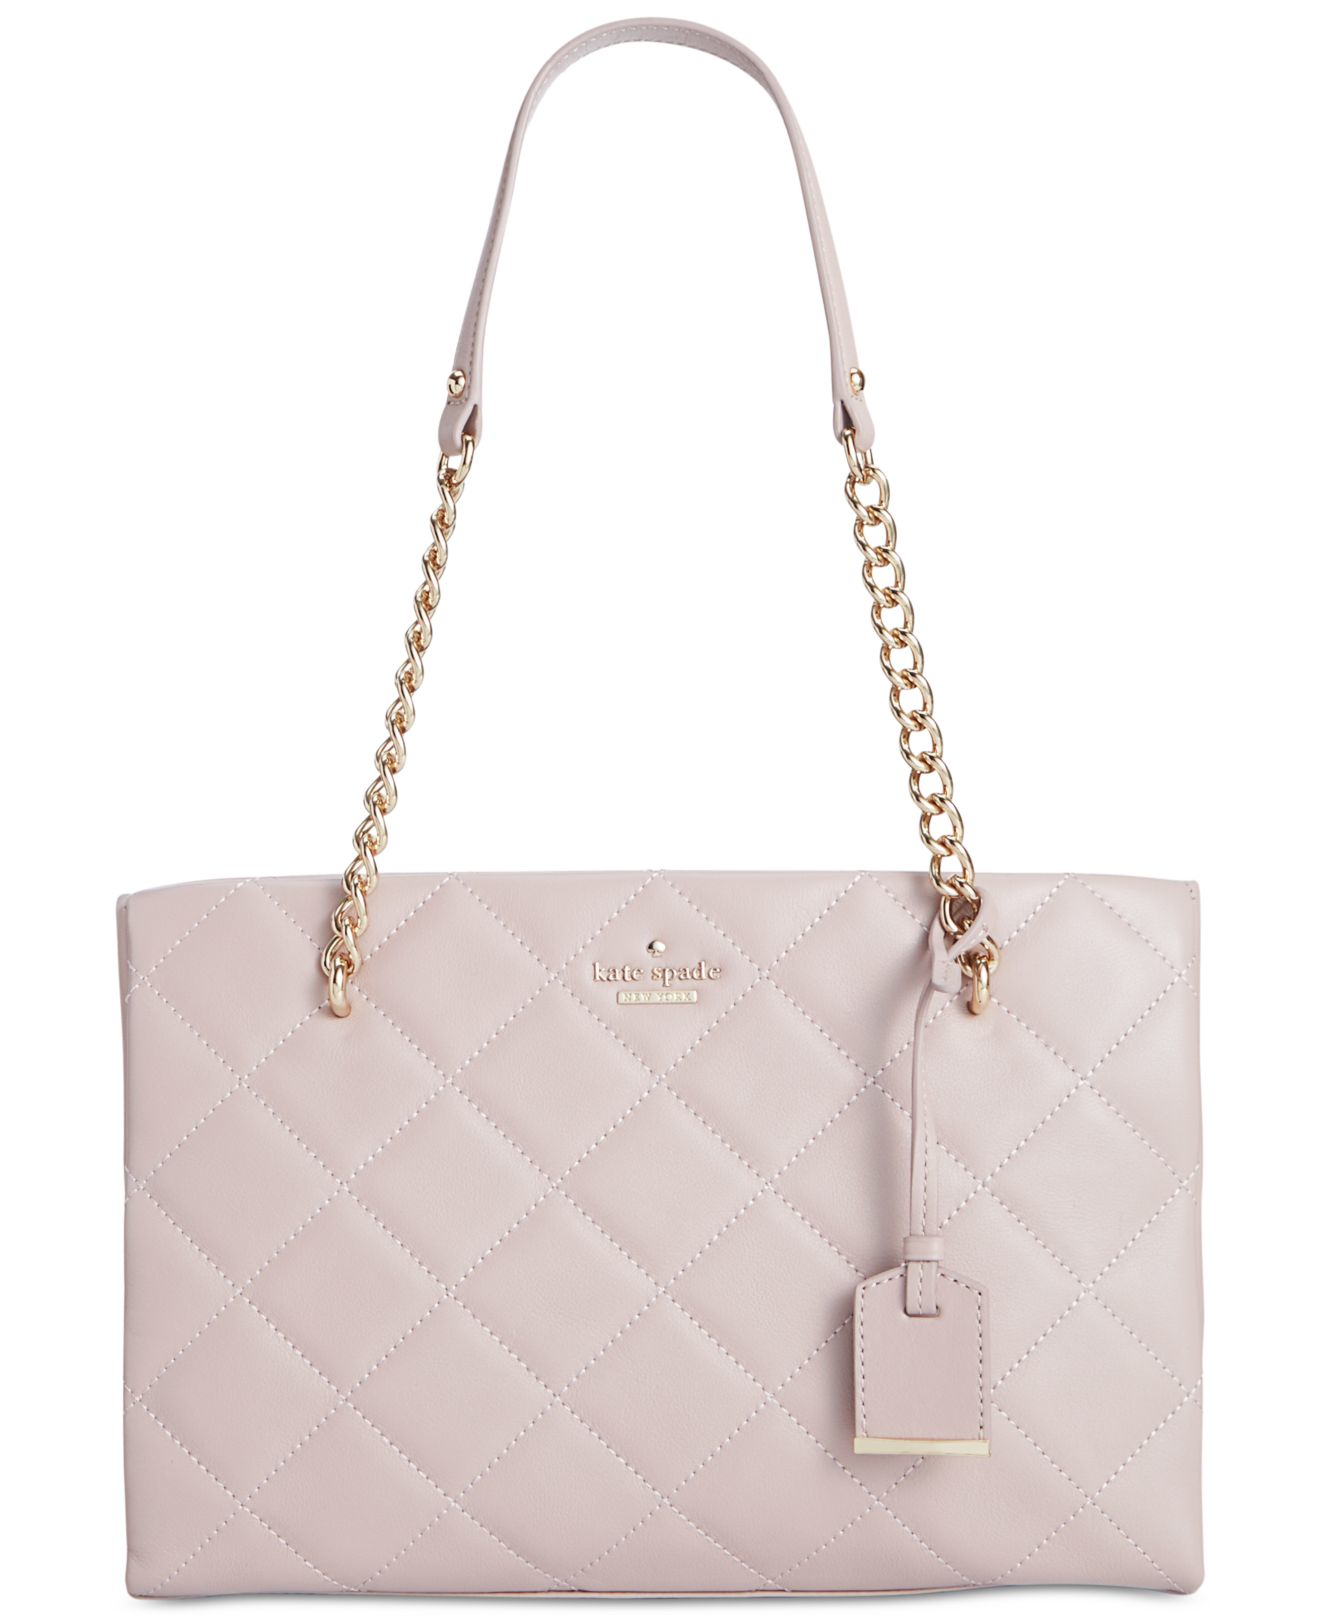 6ee70360b Kate Spade Emerson Place Small Phoebe Shoulder Bag in Pink - Lyst